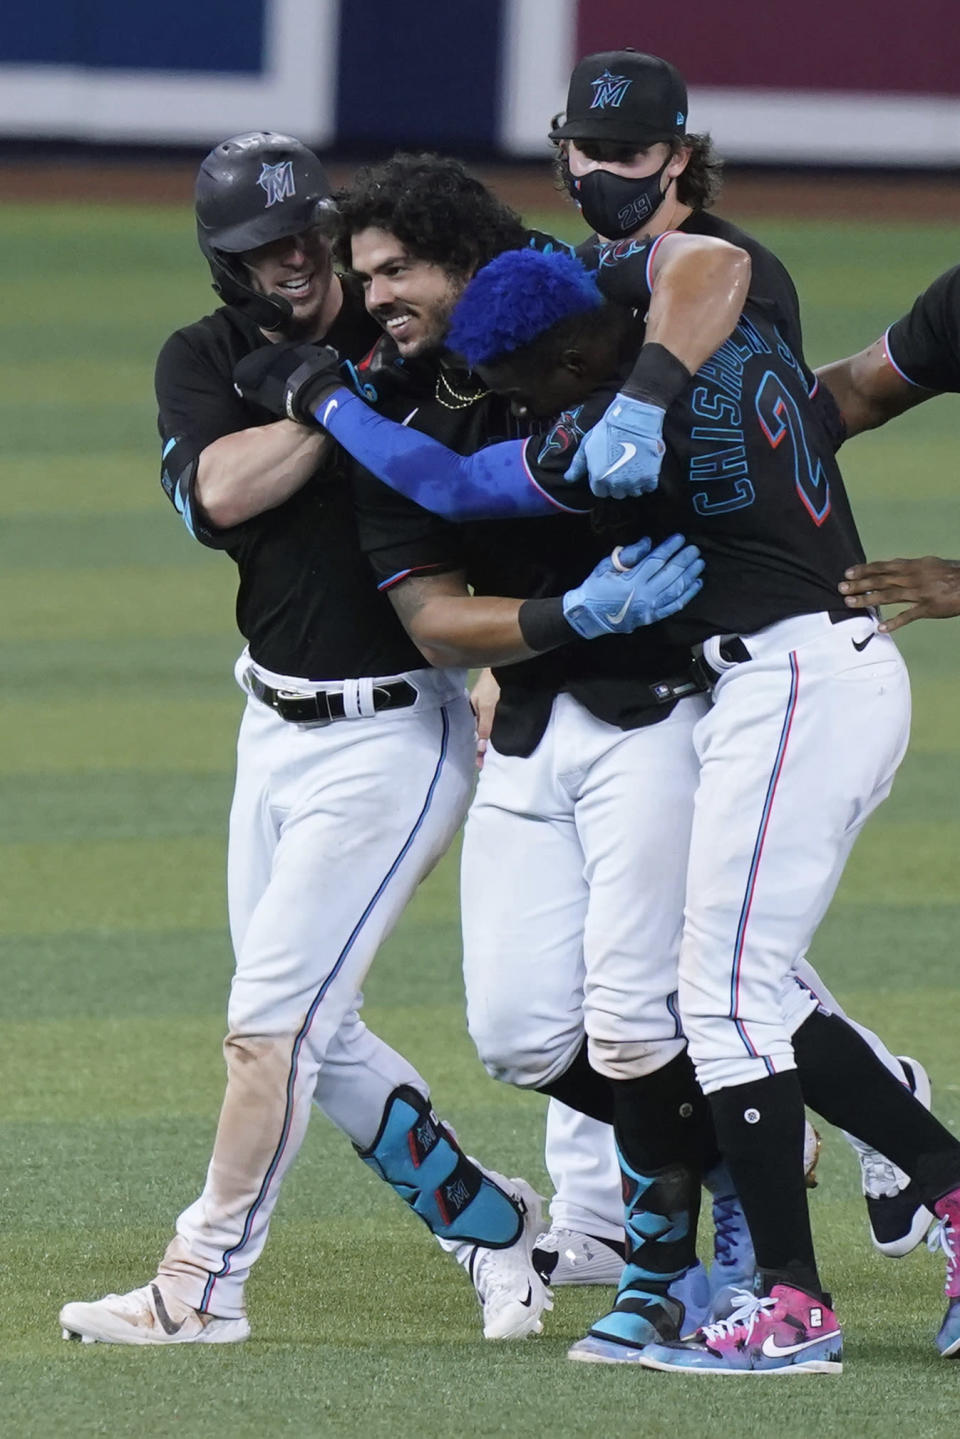 Miami Marlins' Jorge Alfaro, center, is congratulated after he hit a double in the 10th inning to drive in the winning run in the team's baseball game against the San Francisco Giants, Saturday, April 17, 2021, in Miami. The Marlins won 7-6. (AP Photo/Marta Lavandier)